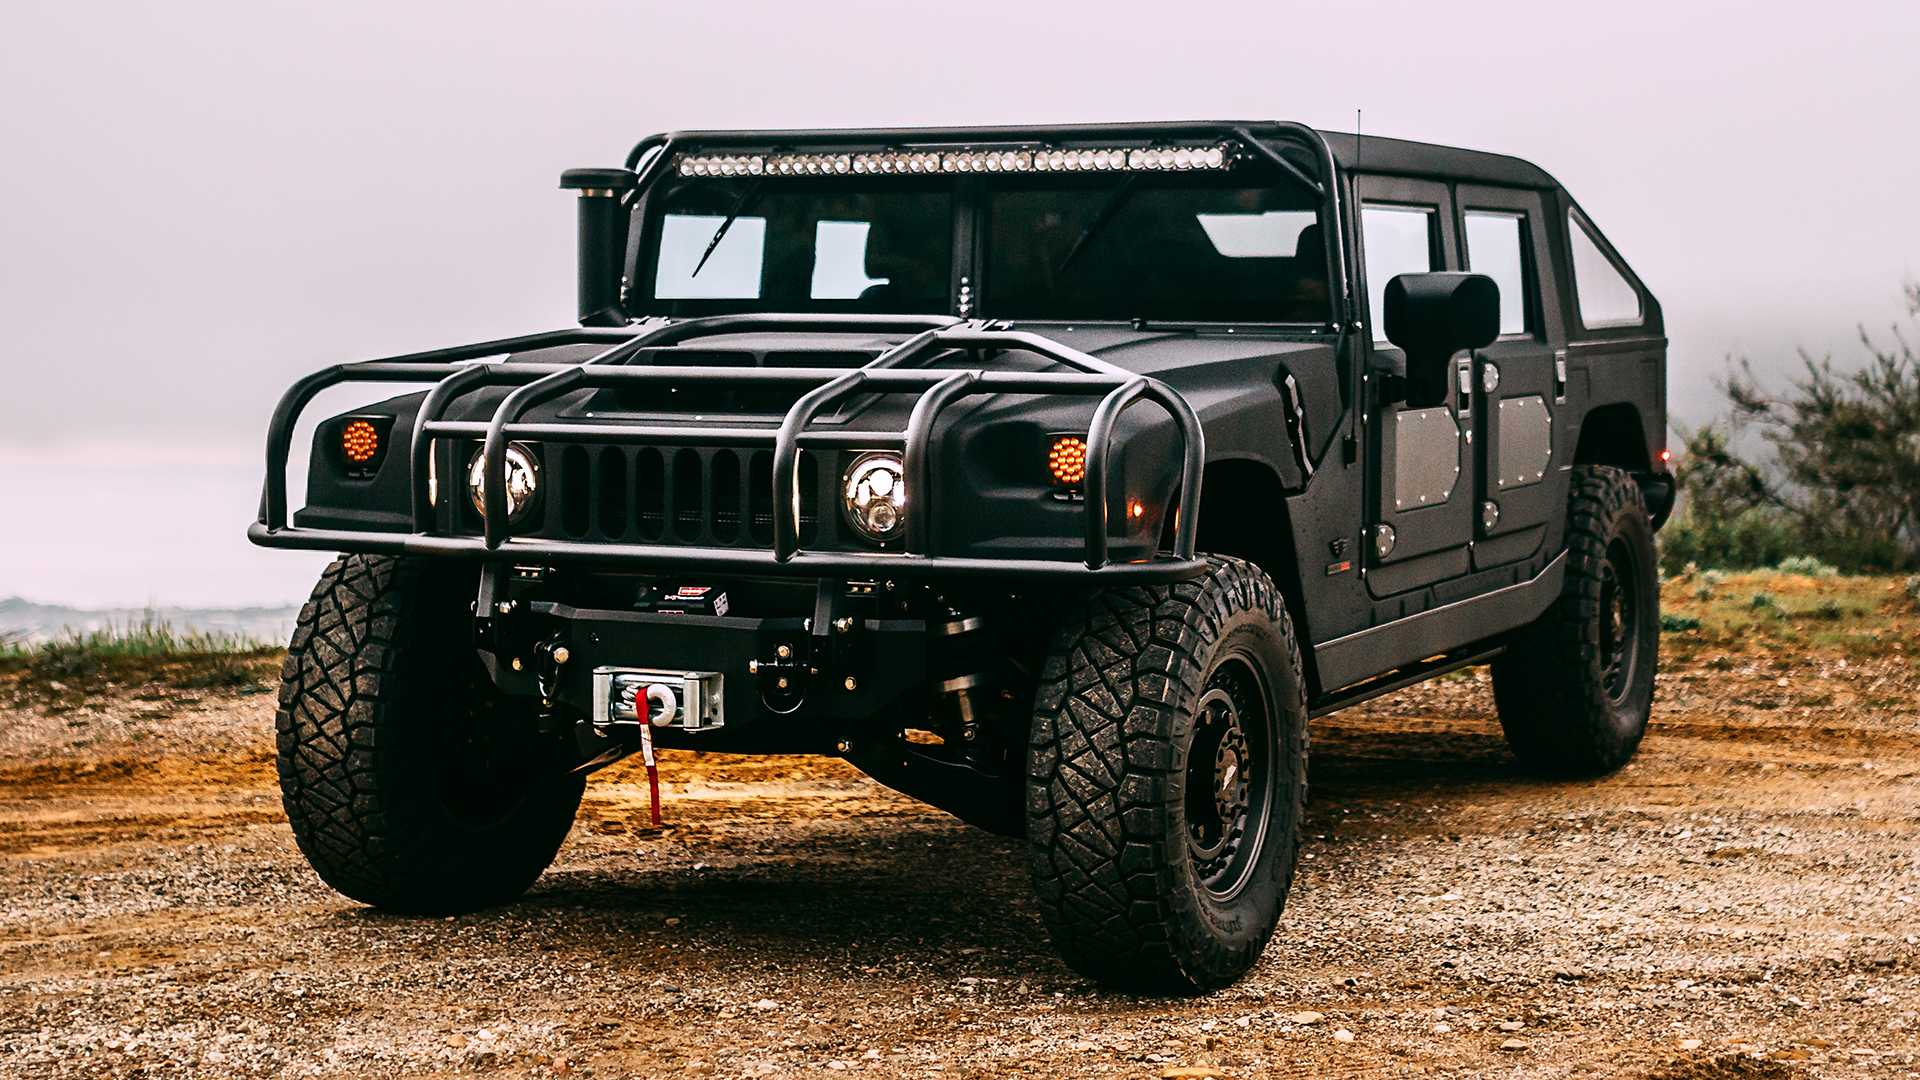 2019 Hummer H1 Price, Concept, Specs >> Mil Spec S New Custom Hummer Looks Ready To Embrace The Dark